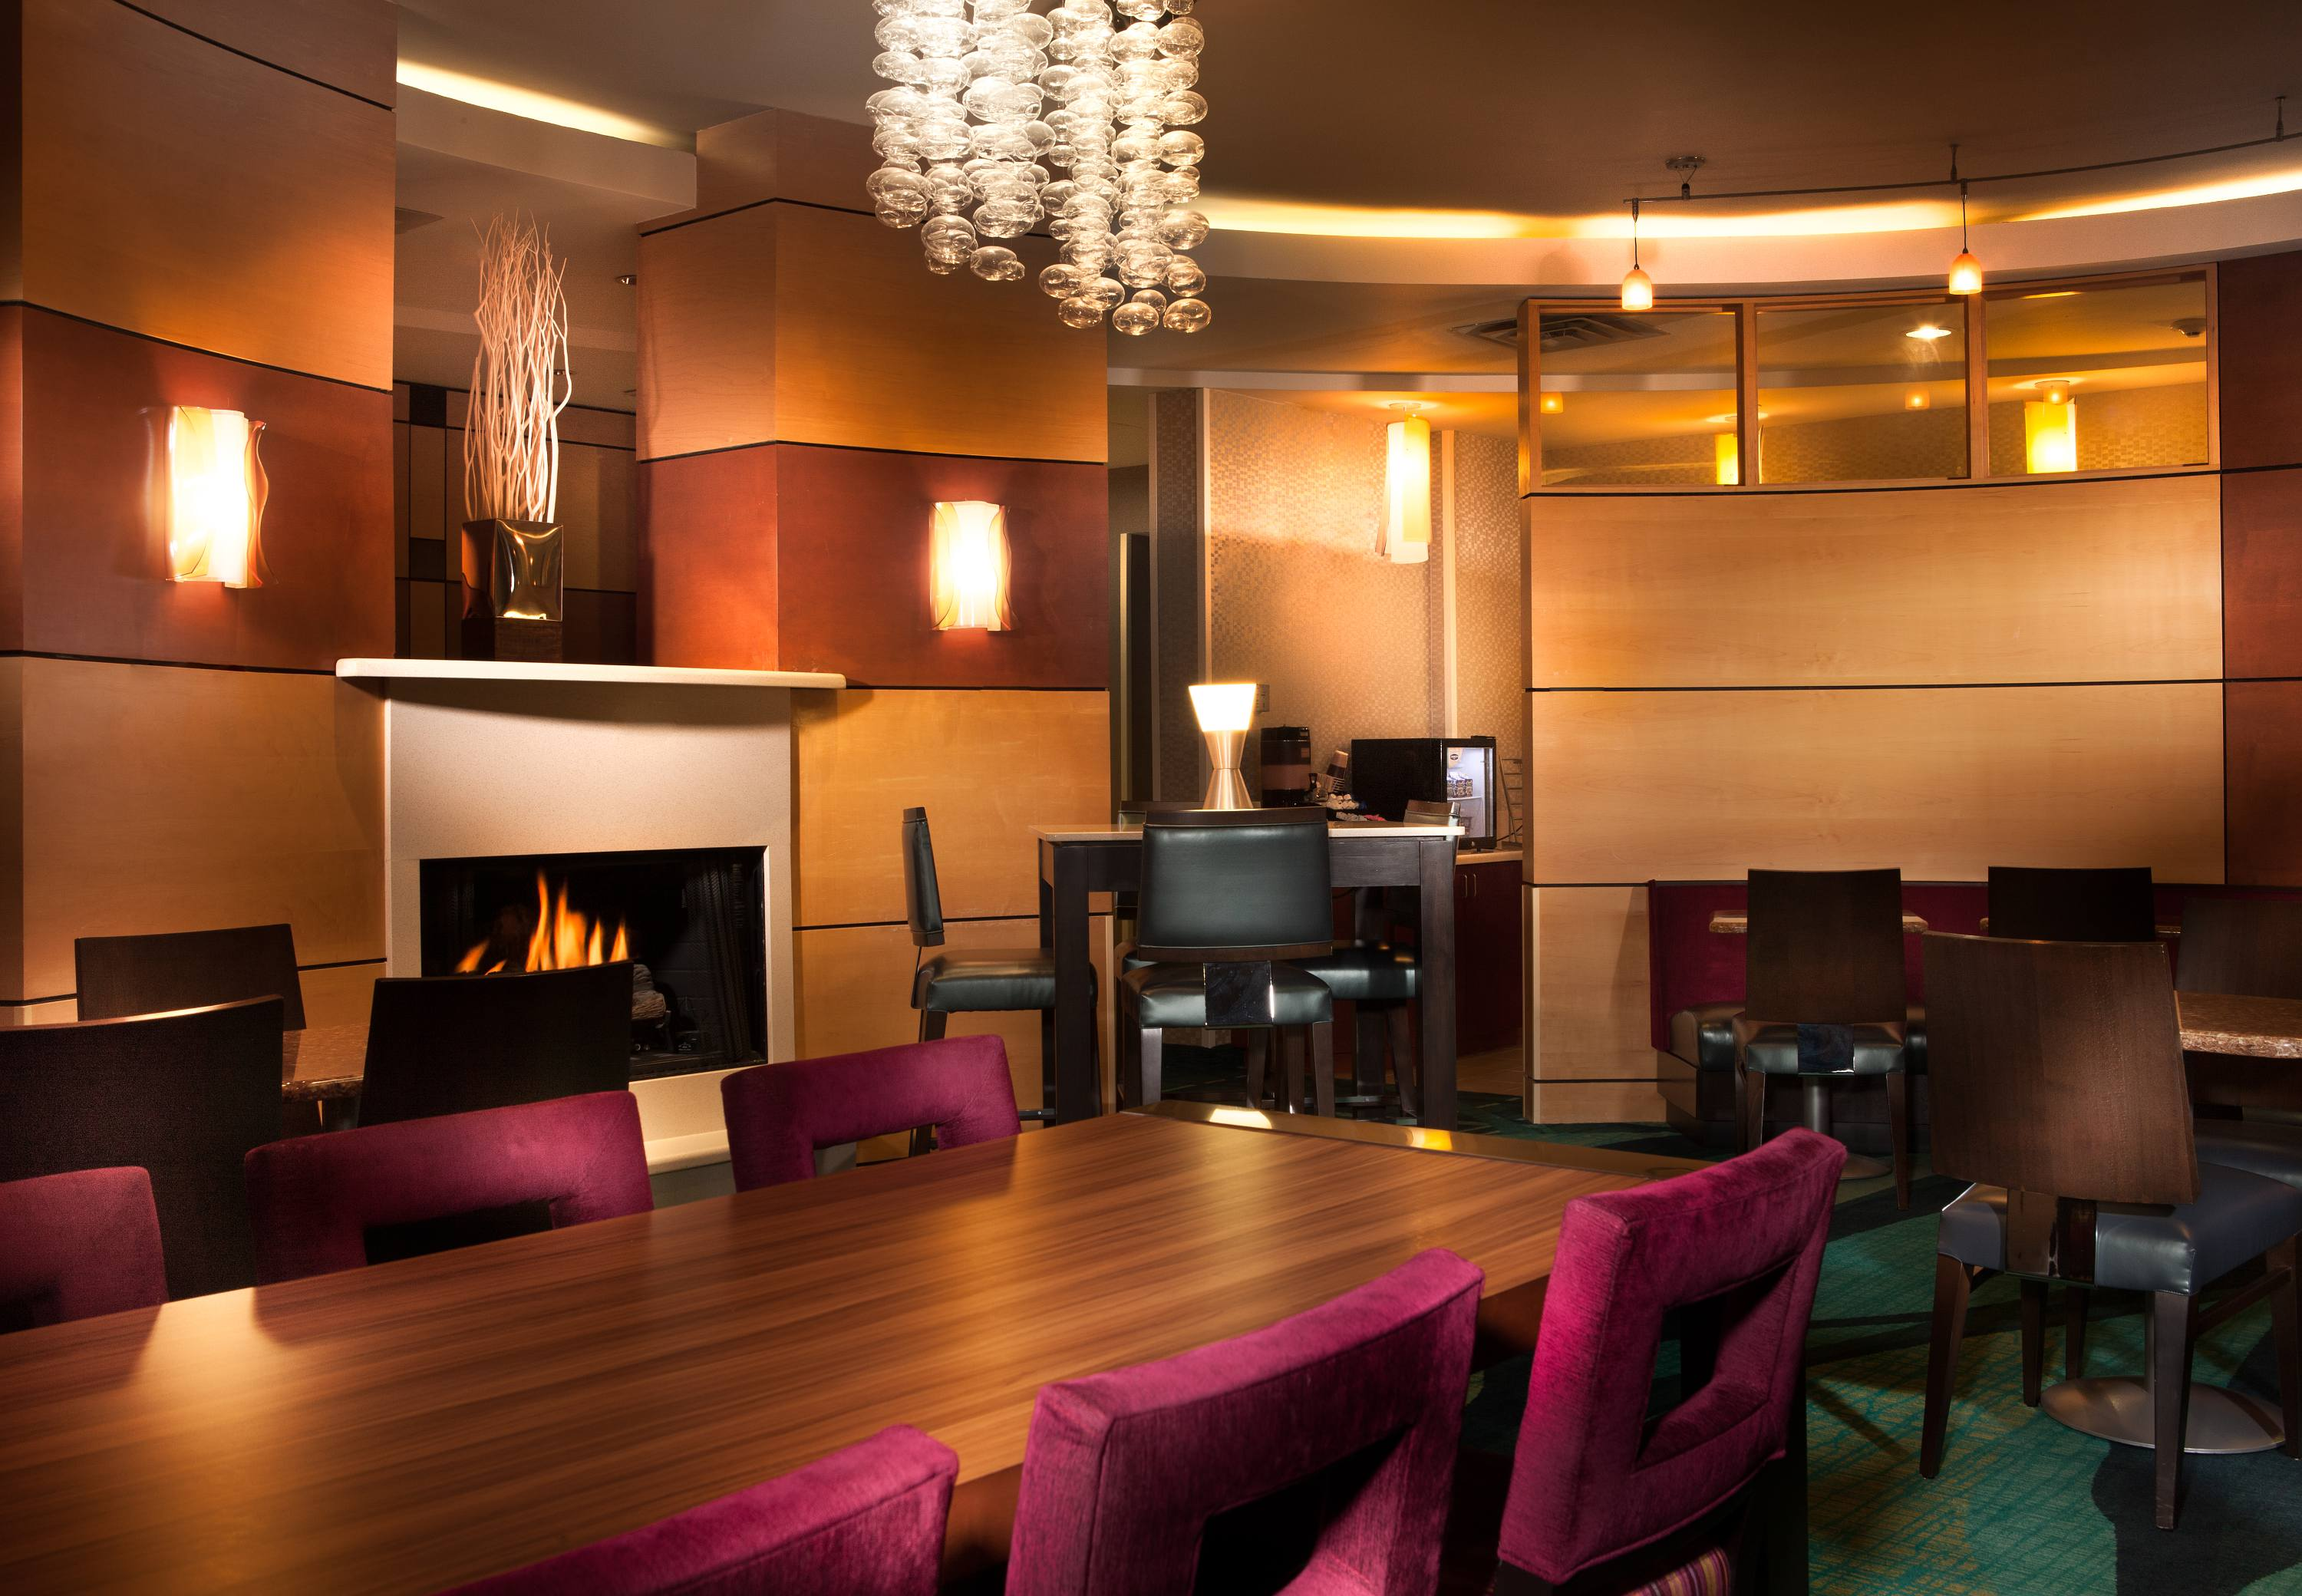 SpringHill Suites by Marriott Dallas DFW Airport North/Grapevine image 7